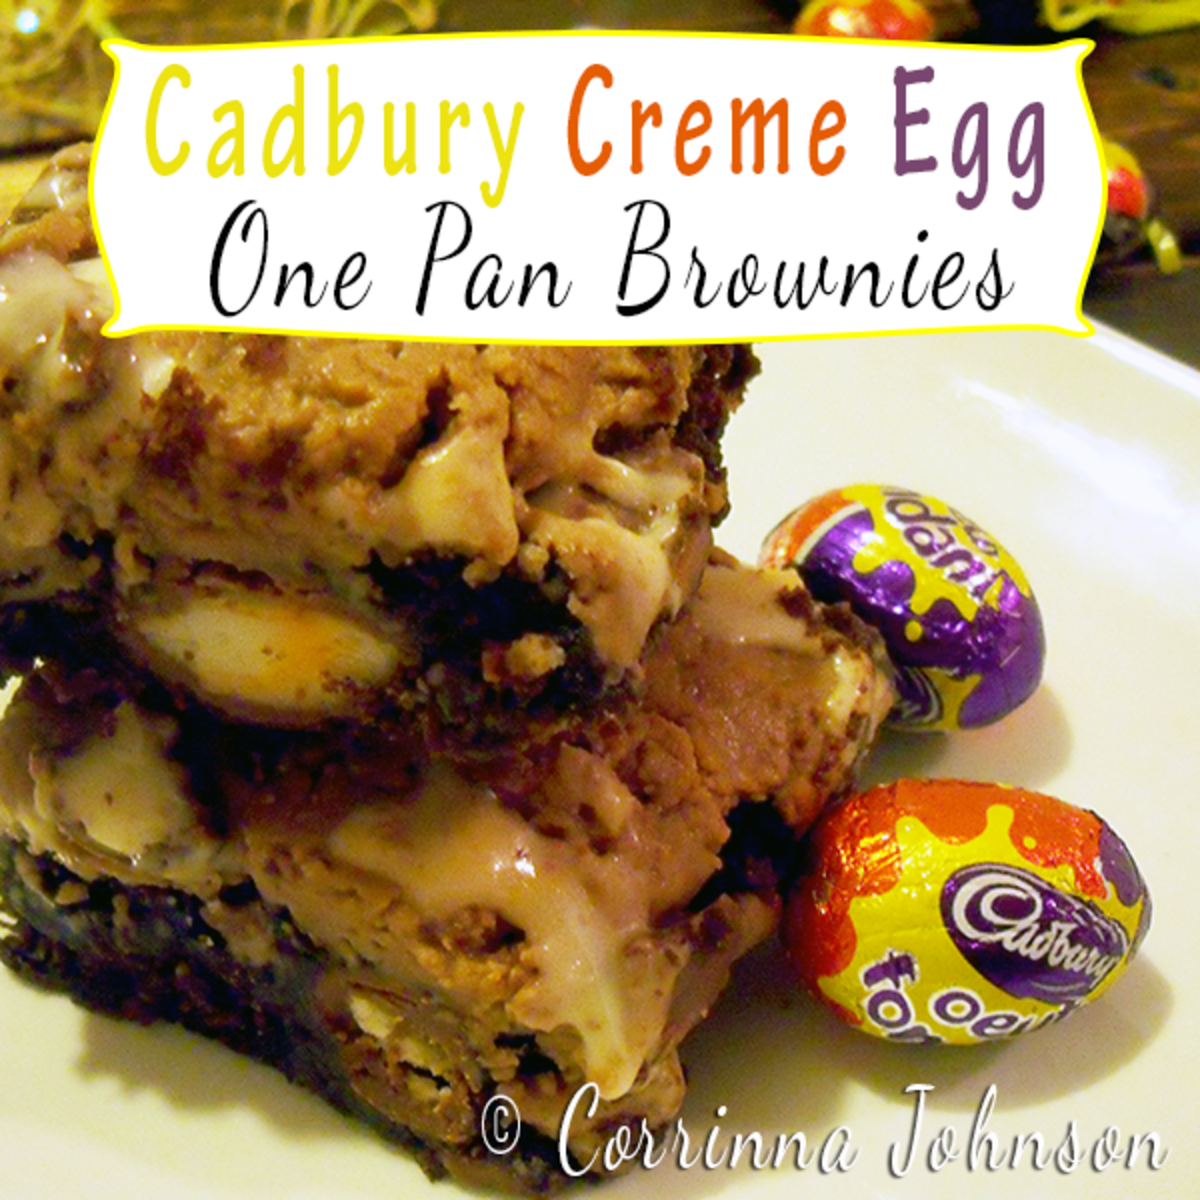 If you thought brownies couldn't get any better, wait until you try one with Cadbury Creme Eggs baked right in!